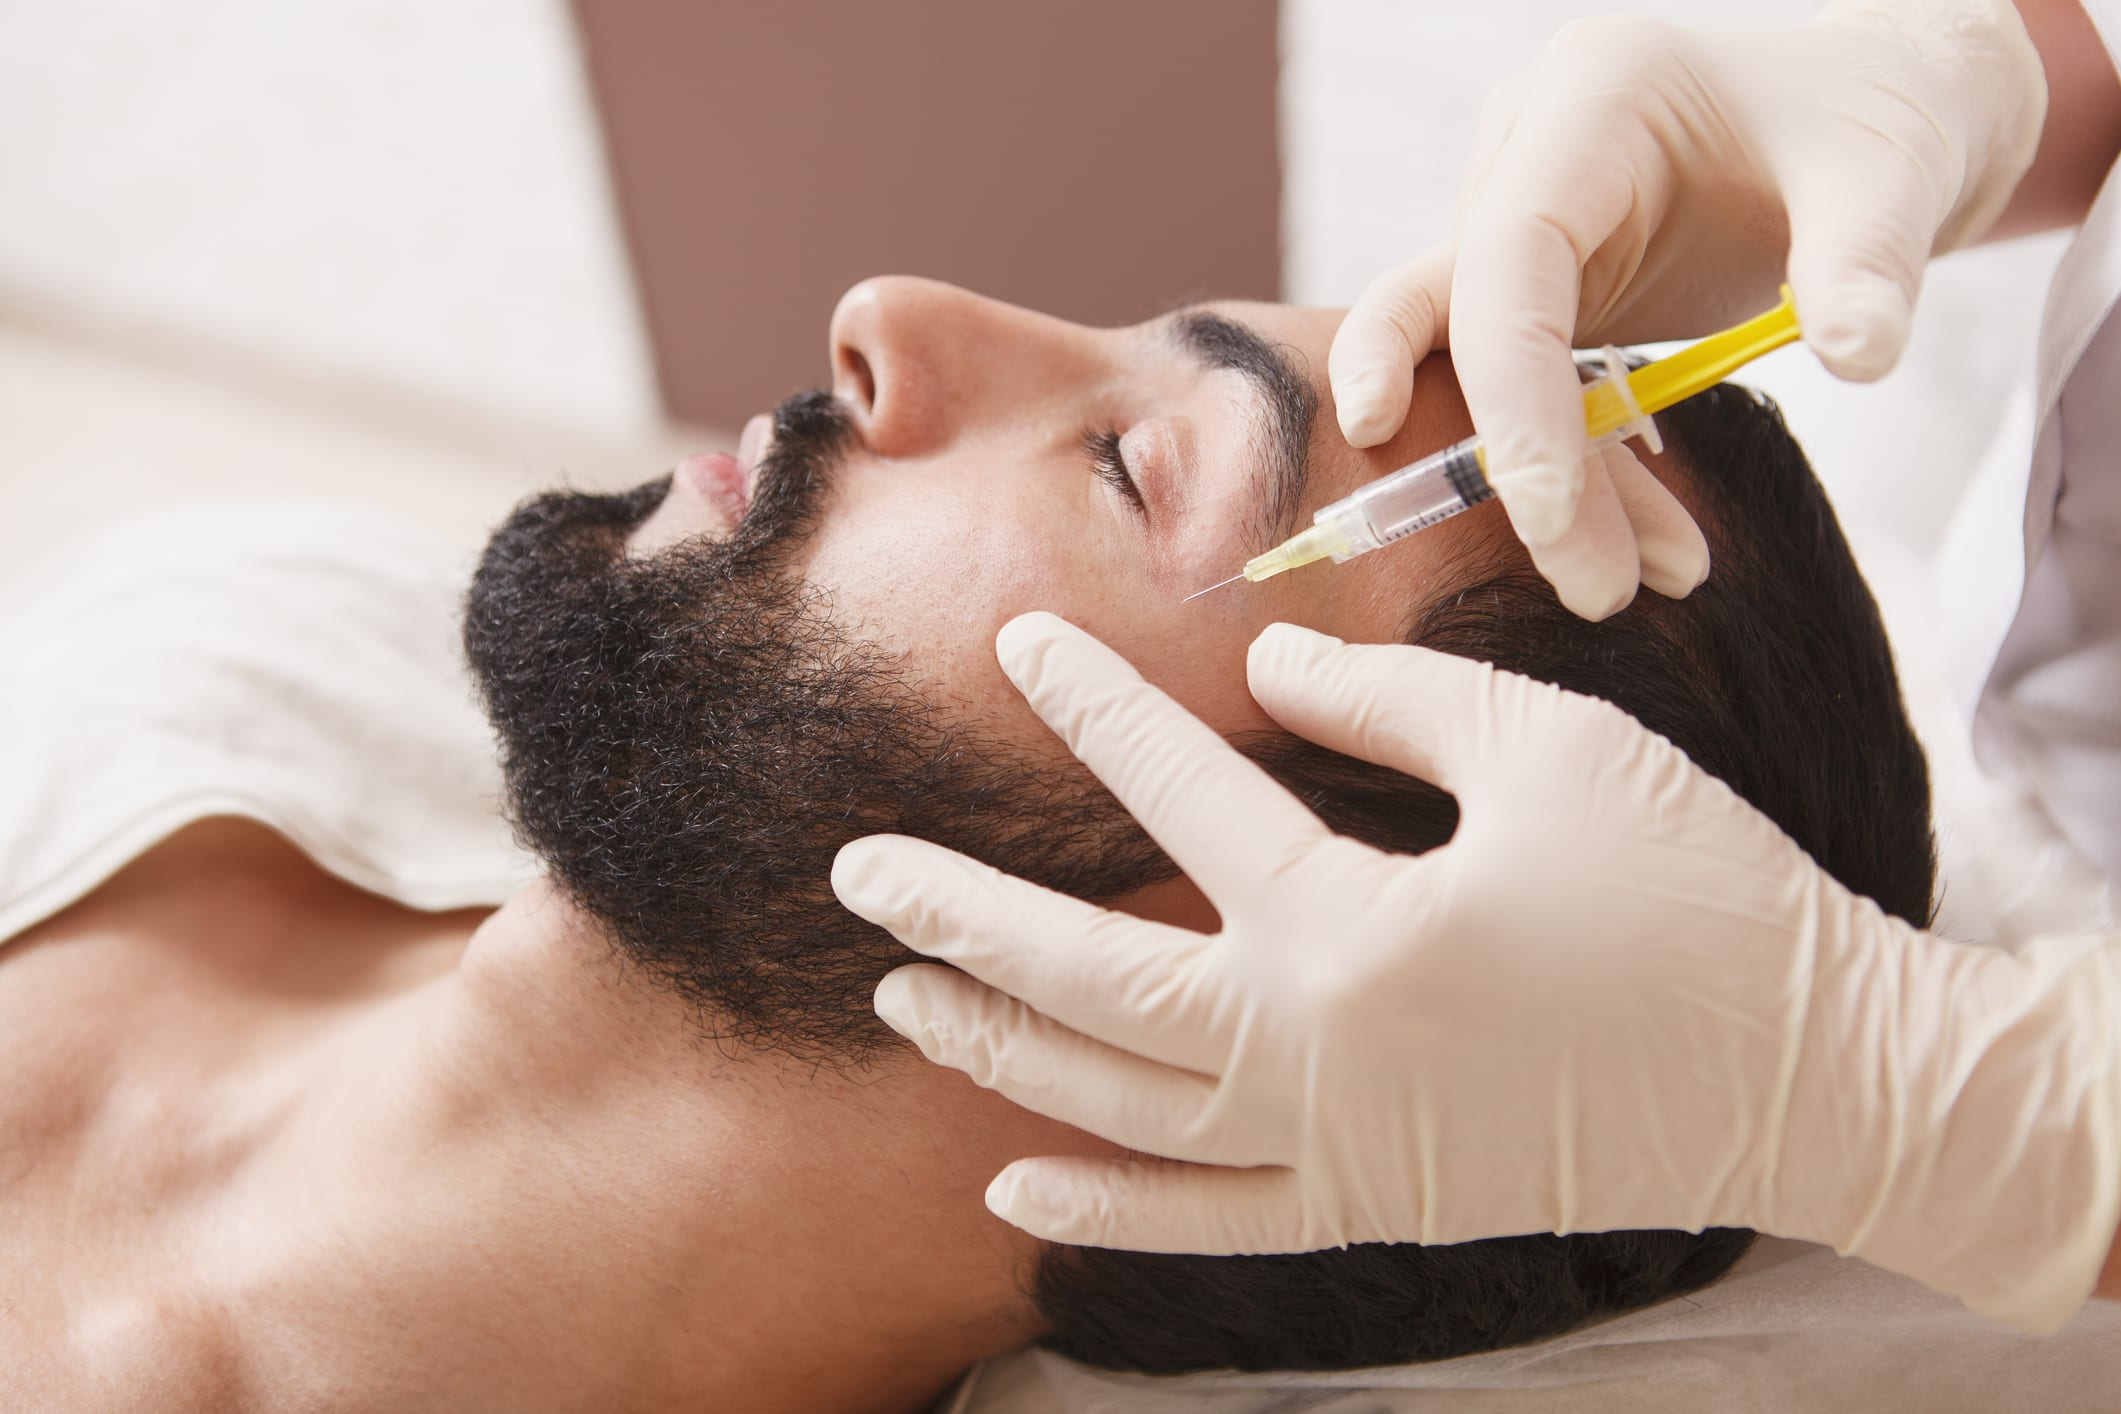 Man getting face filler injections